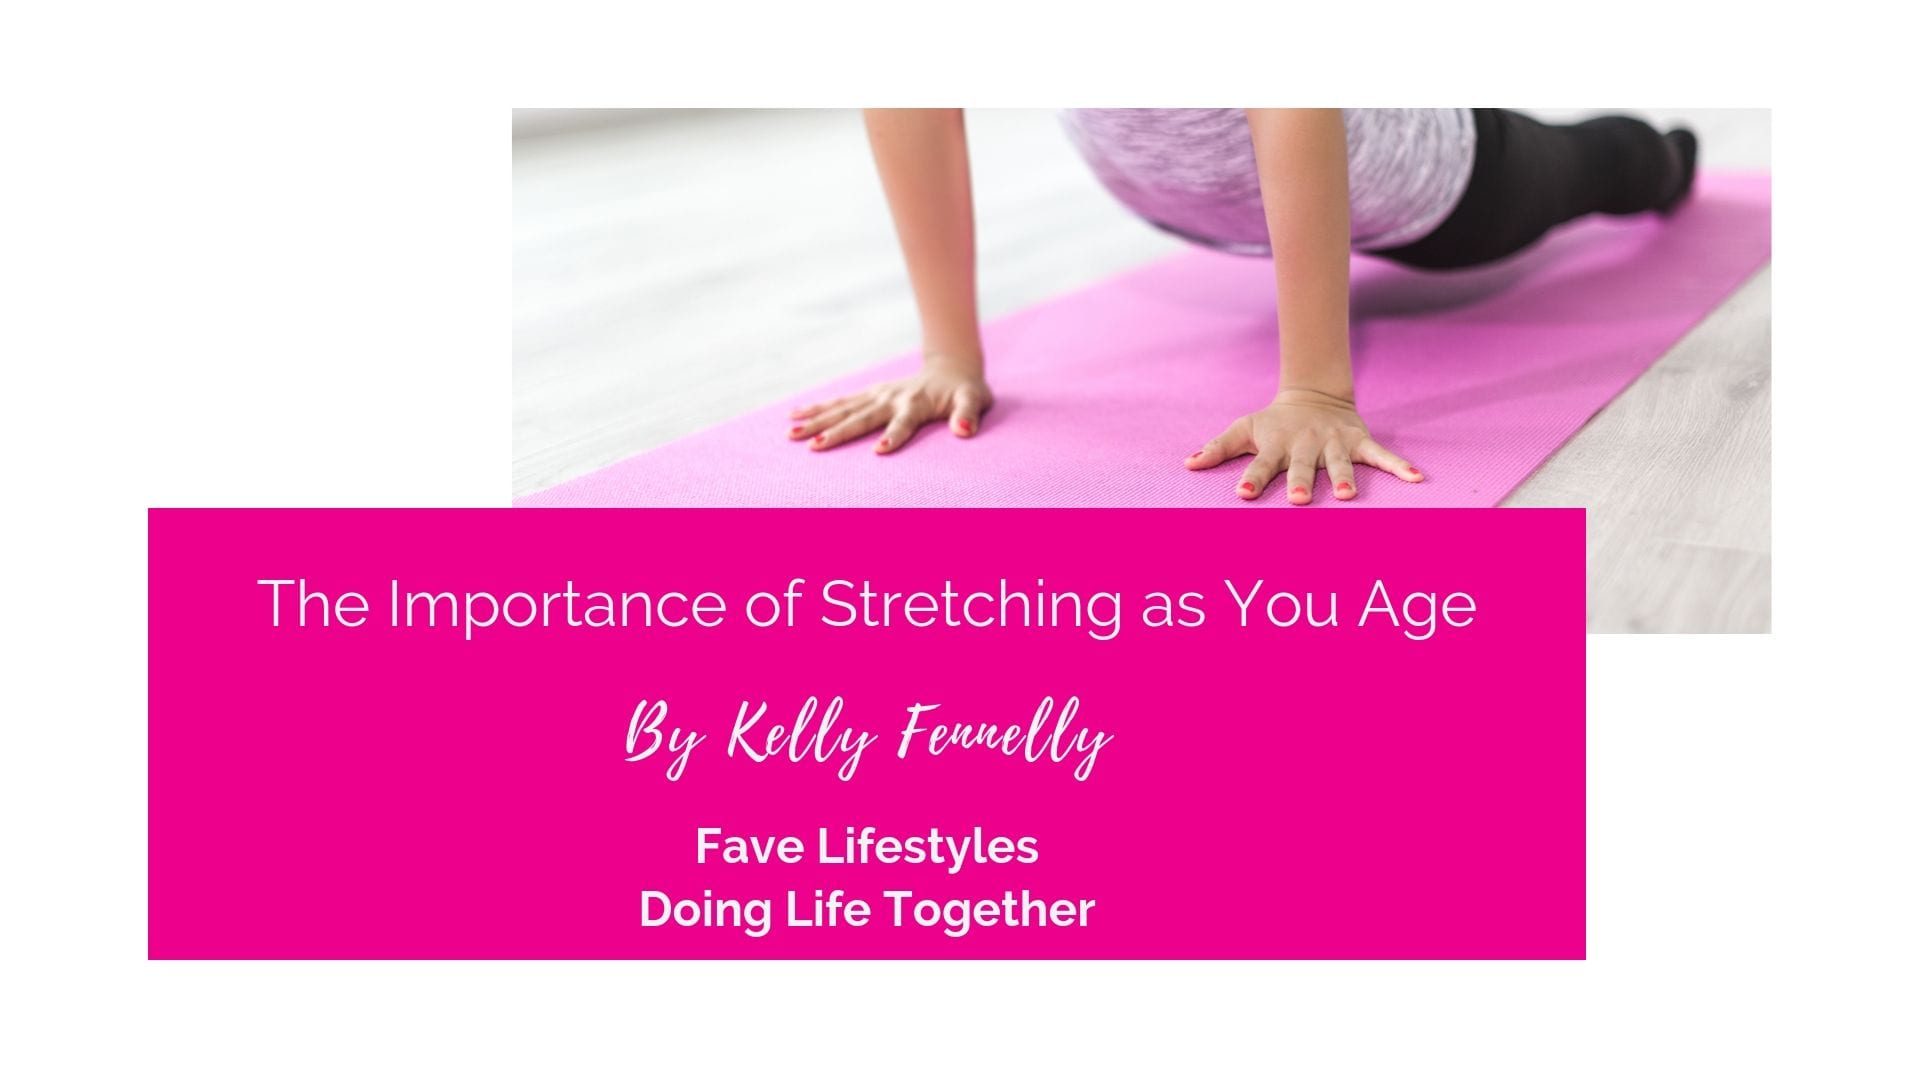 The Importance of Stretching as You Age